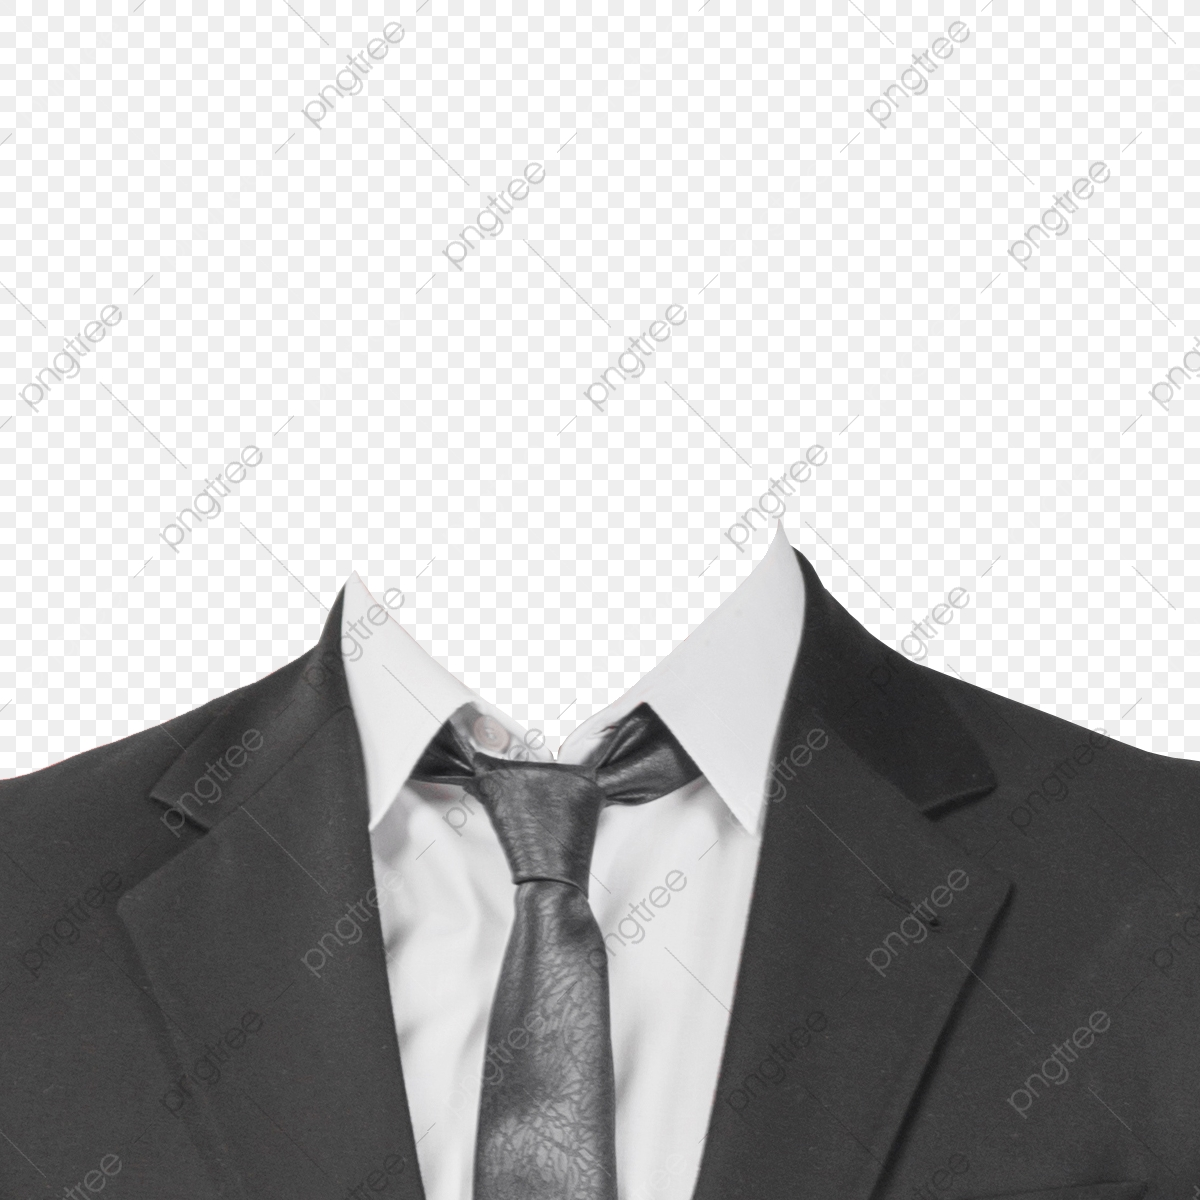 suit png images vector and psd files free download on pngtree https pngtree com freepng formal wear free png 4844570 html